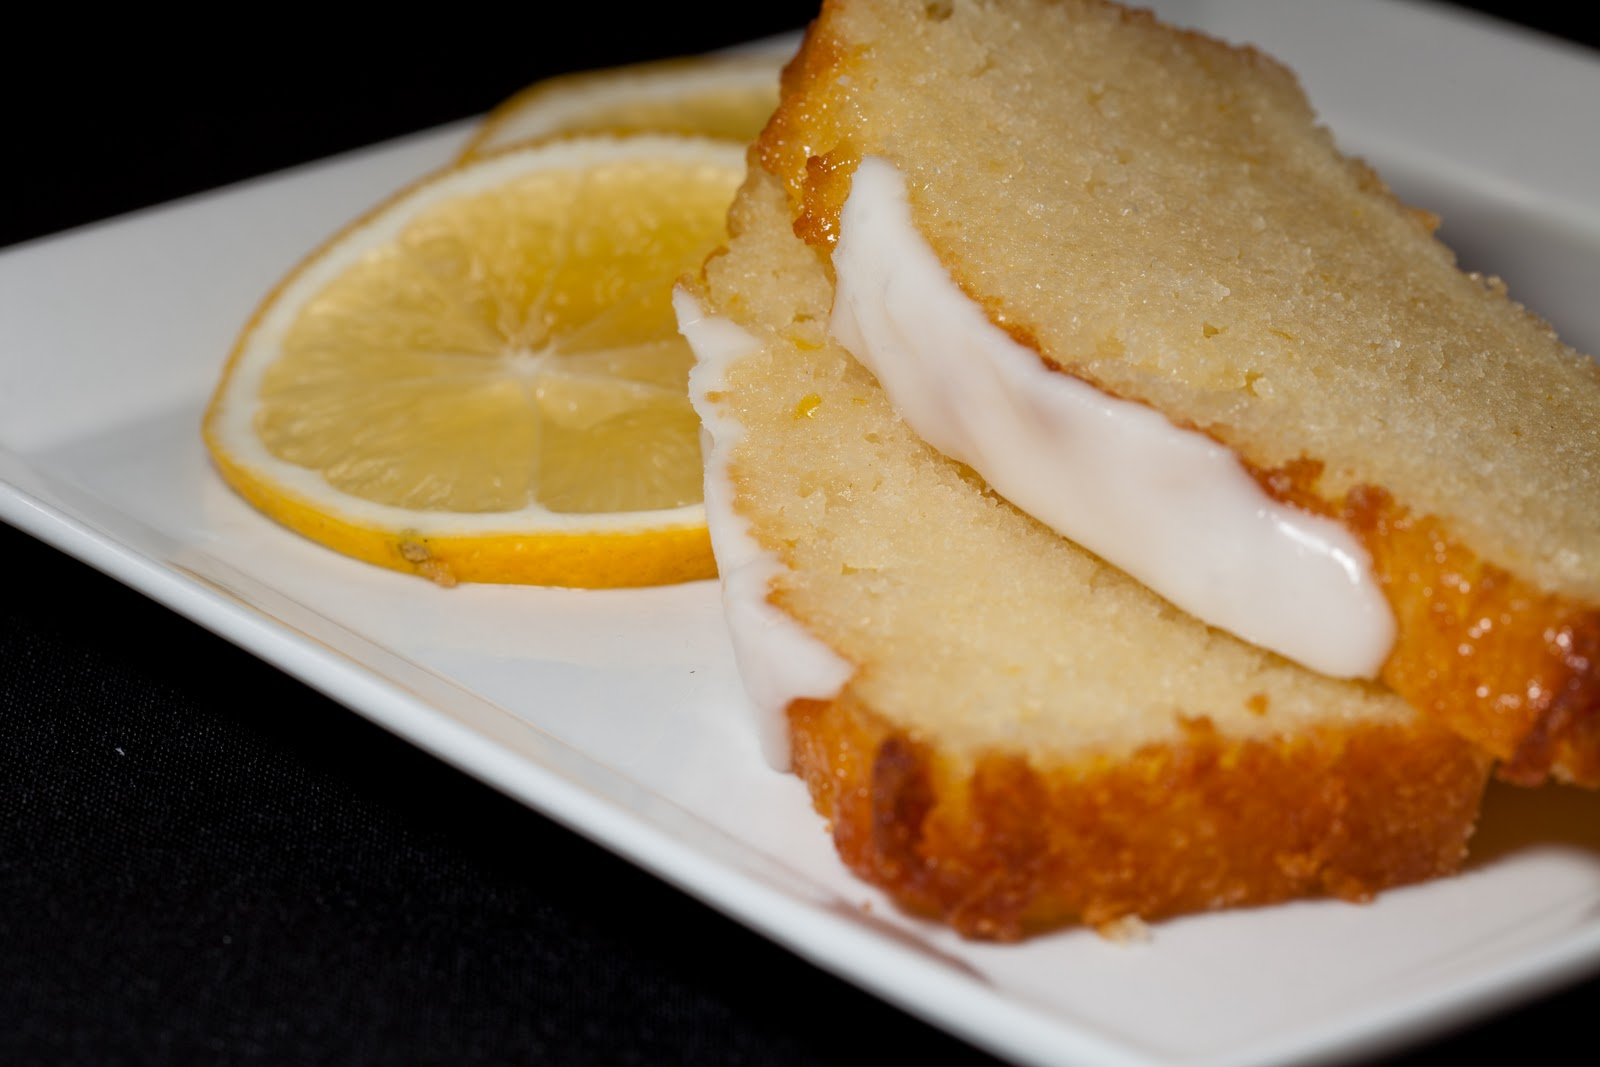 ... with kikukat: Lemon Cake (adapted from Barefoot Contessa Lemon Cake